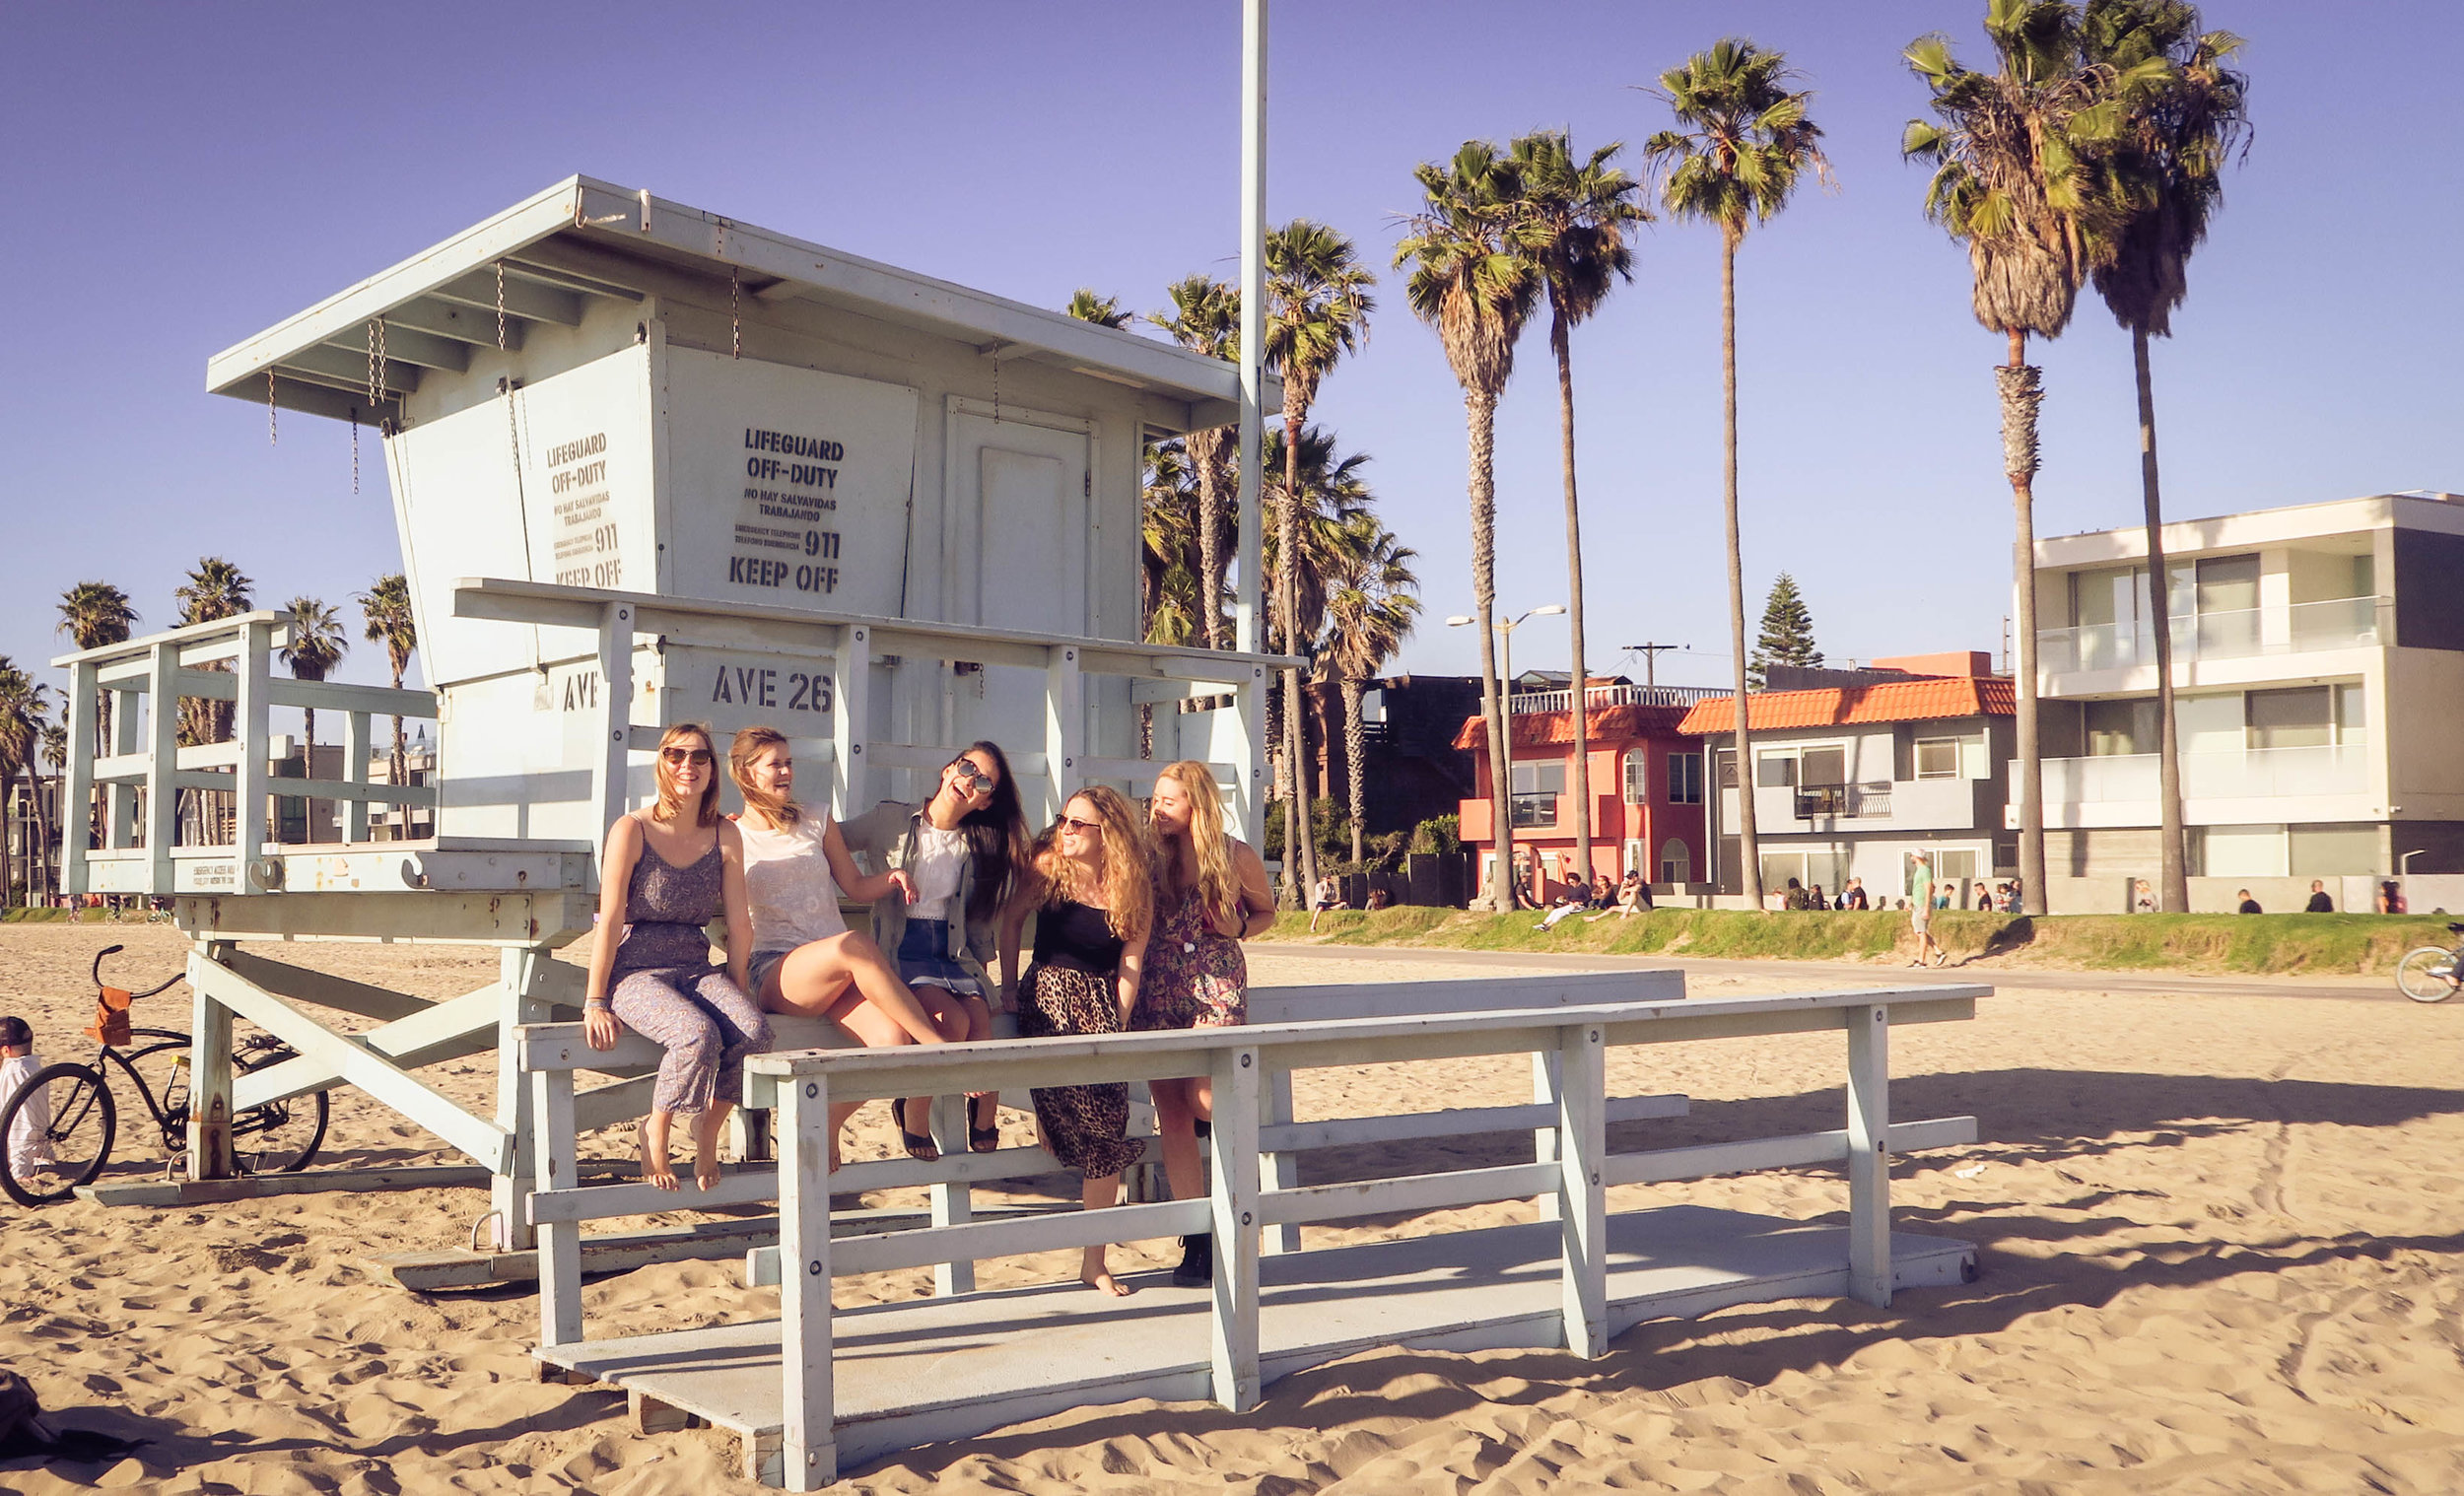 Typical LA Beach photo - Where are the lifeguards?